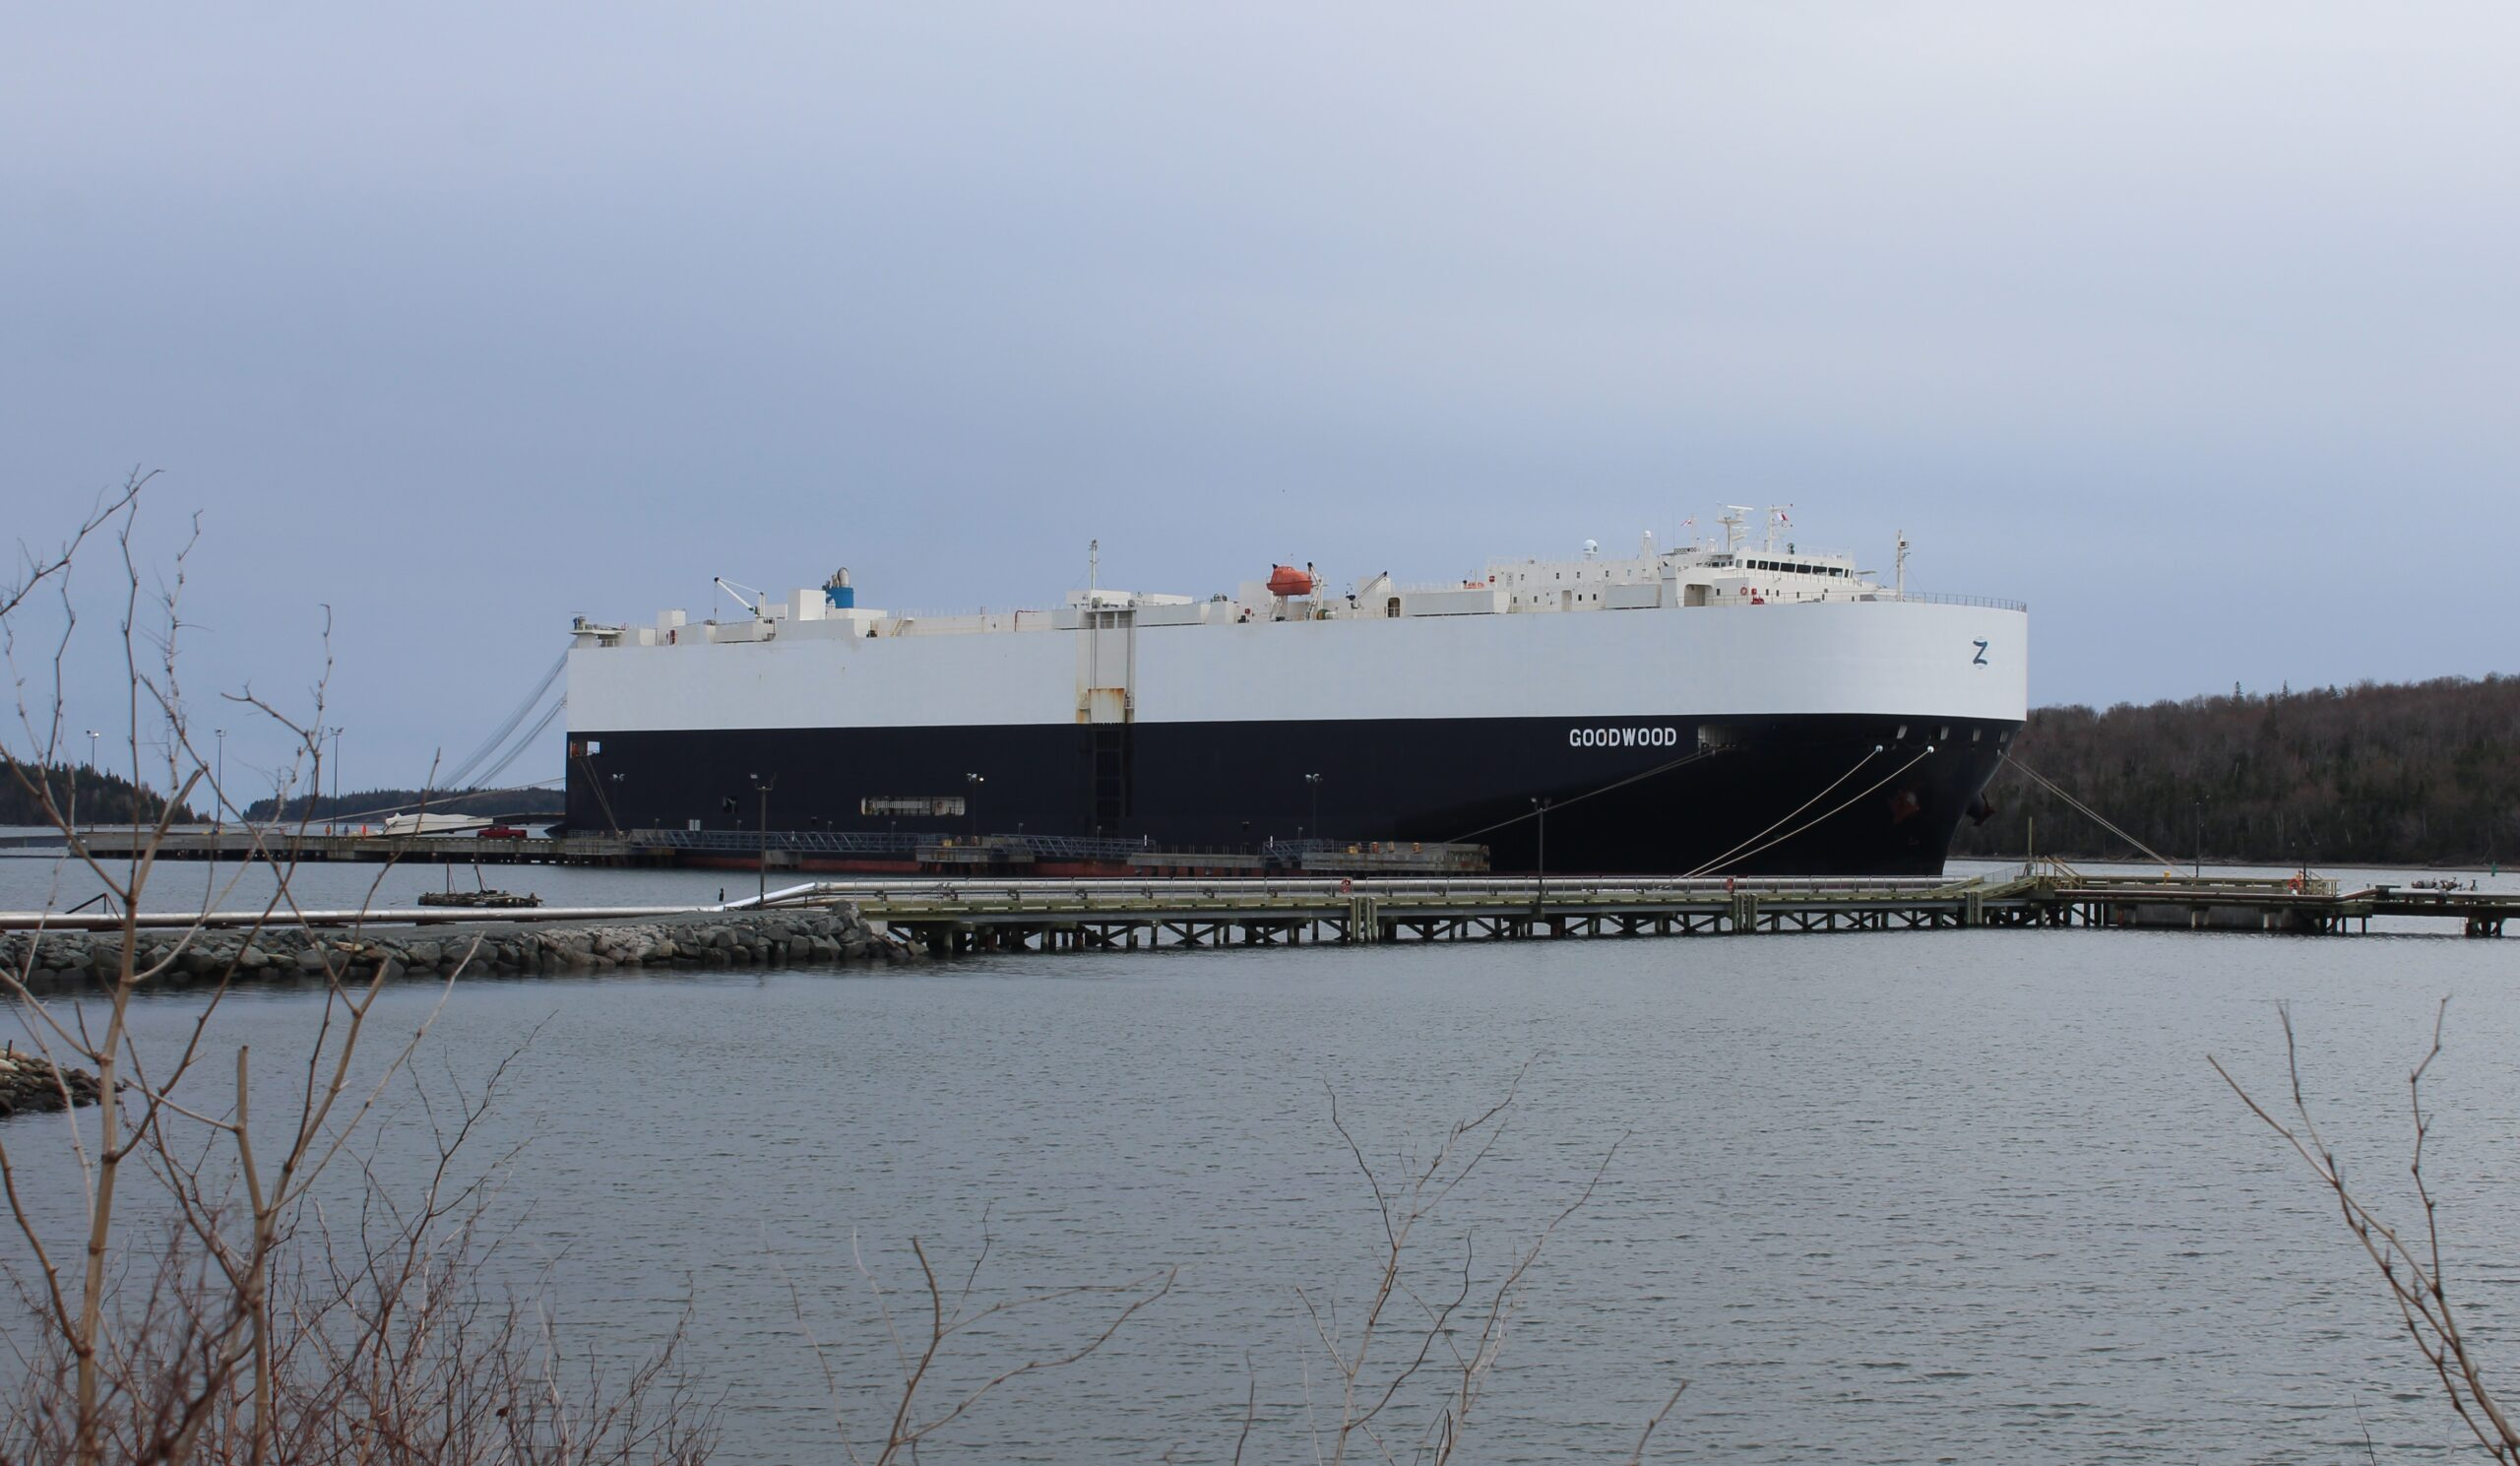 A photo of the car carrier Goodwood, tied up at dock on an overcast day. Its massive hull is painted blue on the bottom, and white on the top.